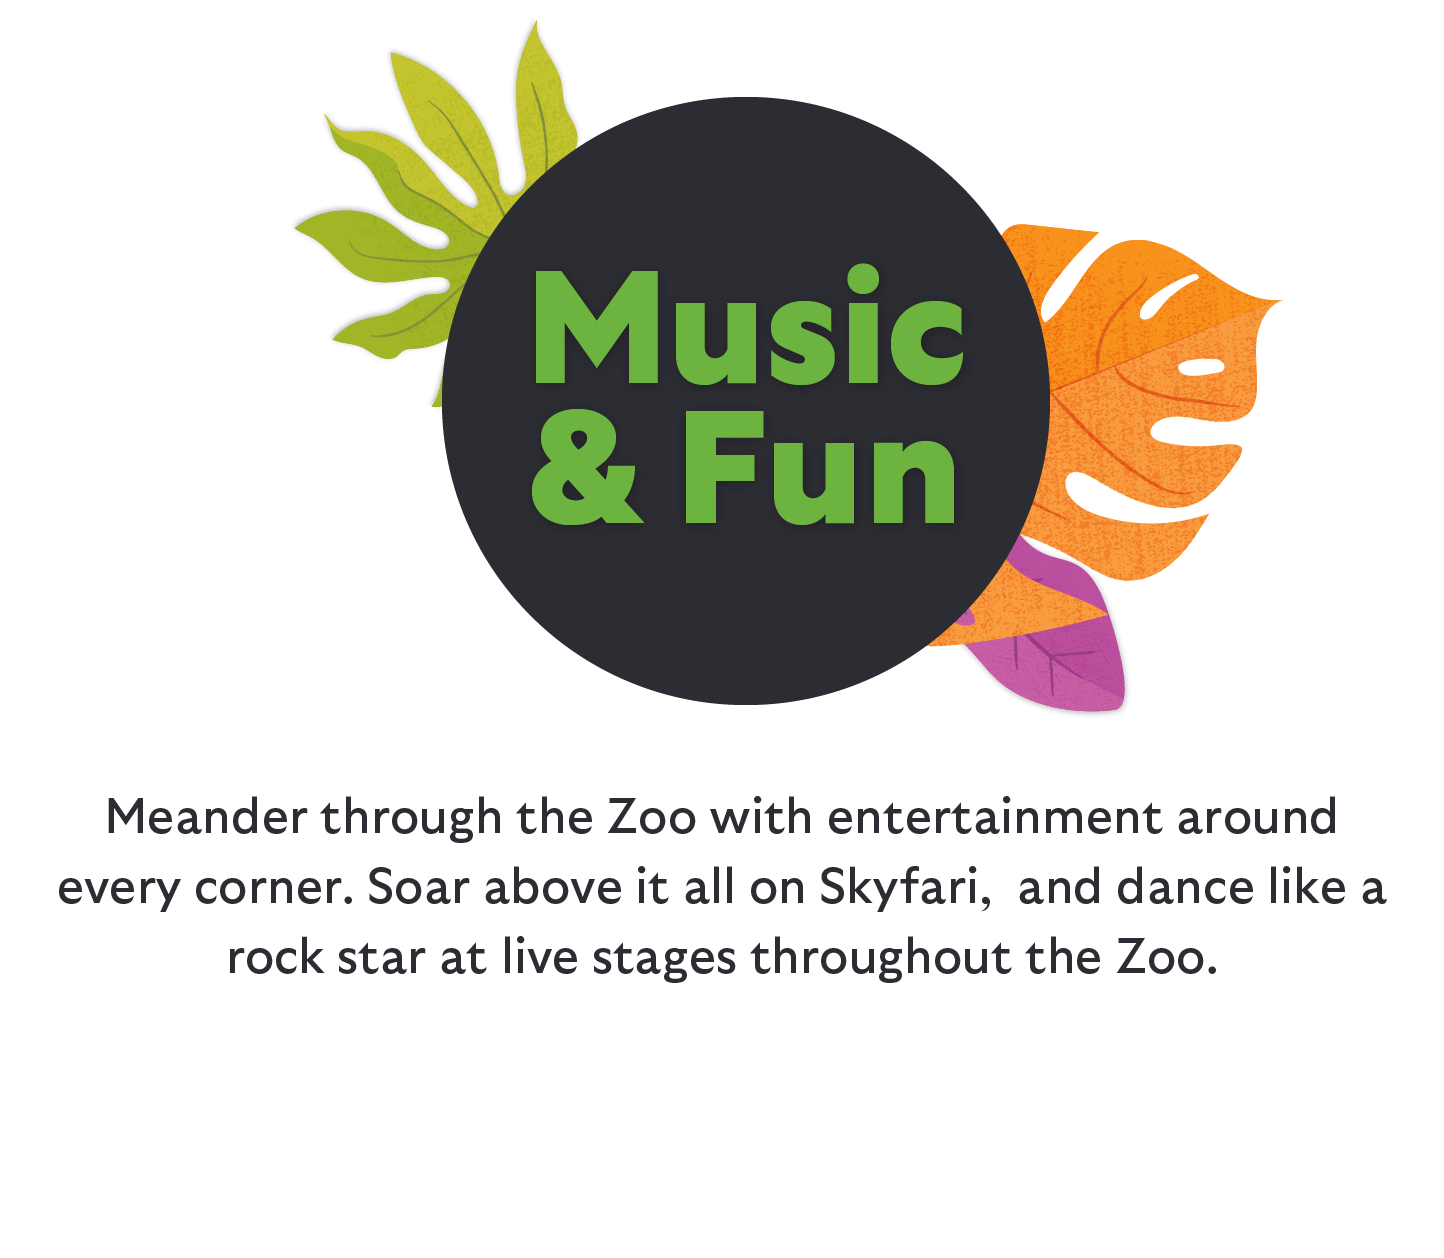 Meander through the Zoo with entertainment around every corner. Soar above it all on Skyfari, and dance like a rock star at live stages throughout the Zoo.